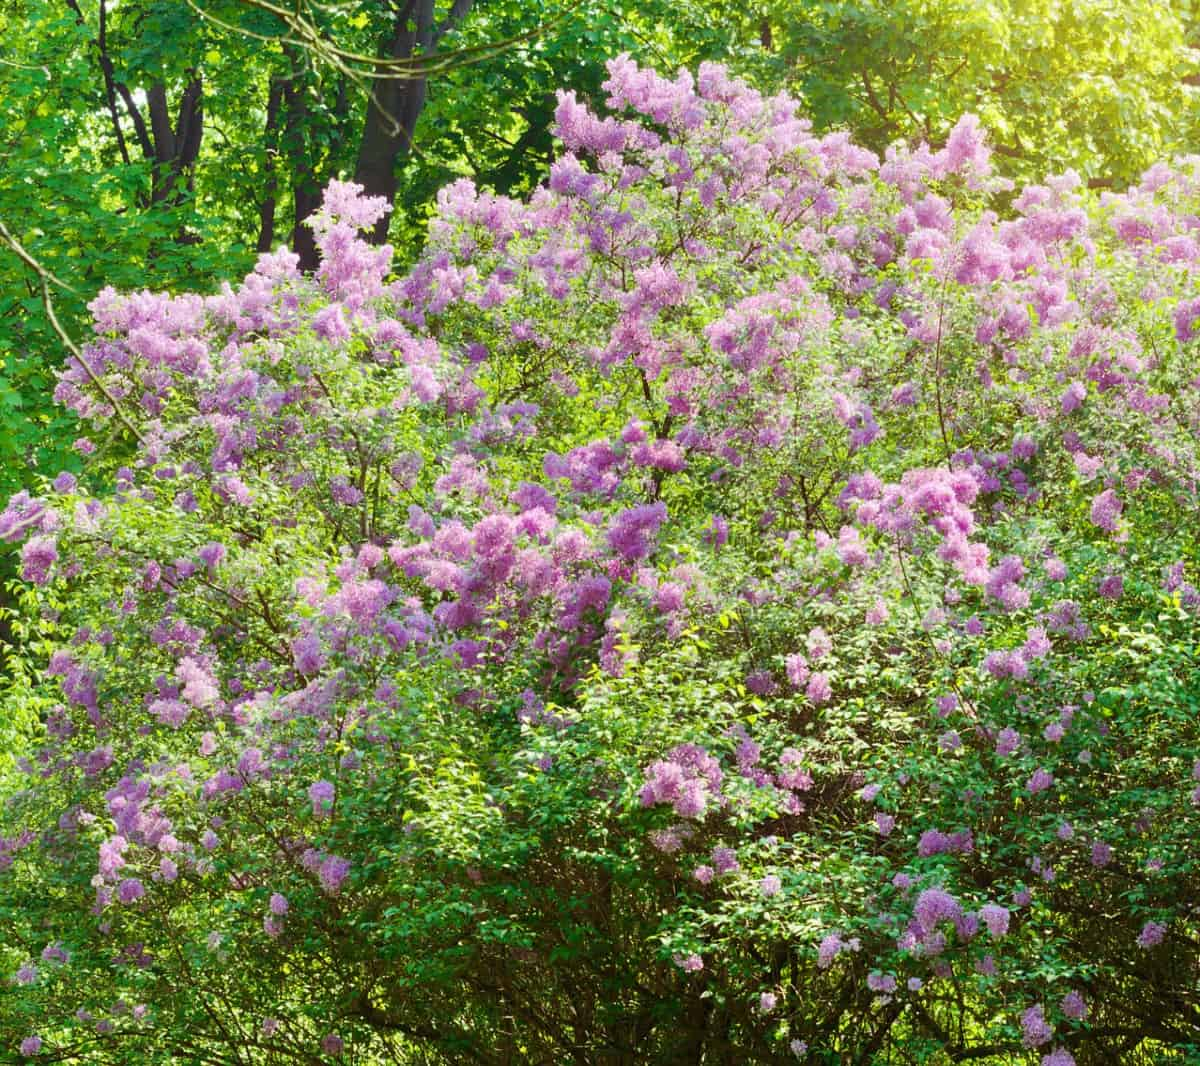 the lilac bush offers both privacy and a delightful scent